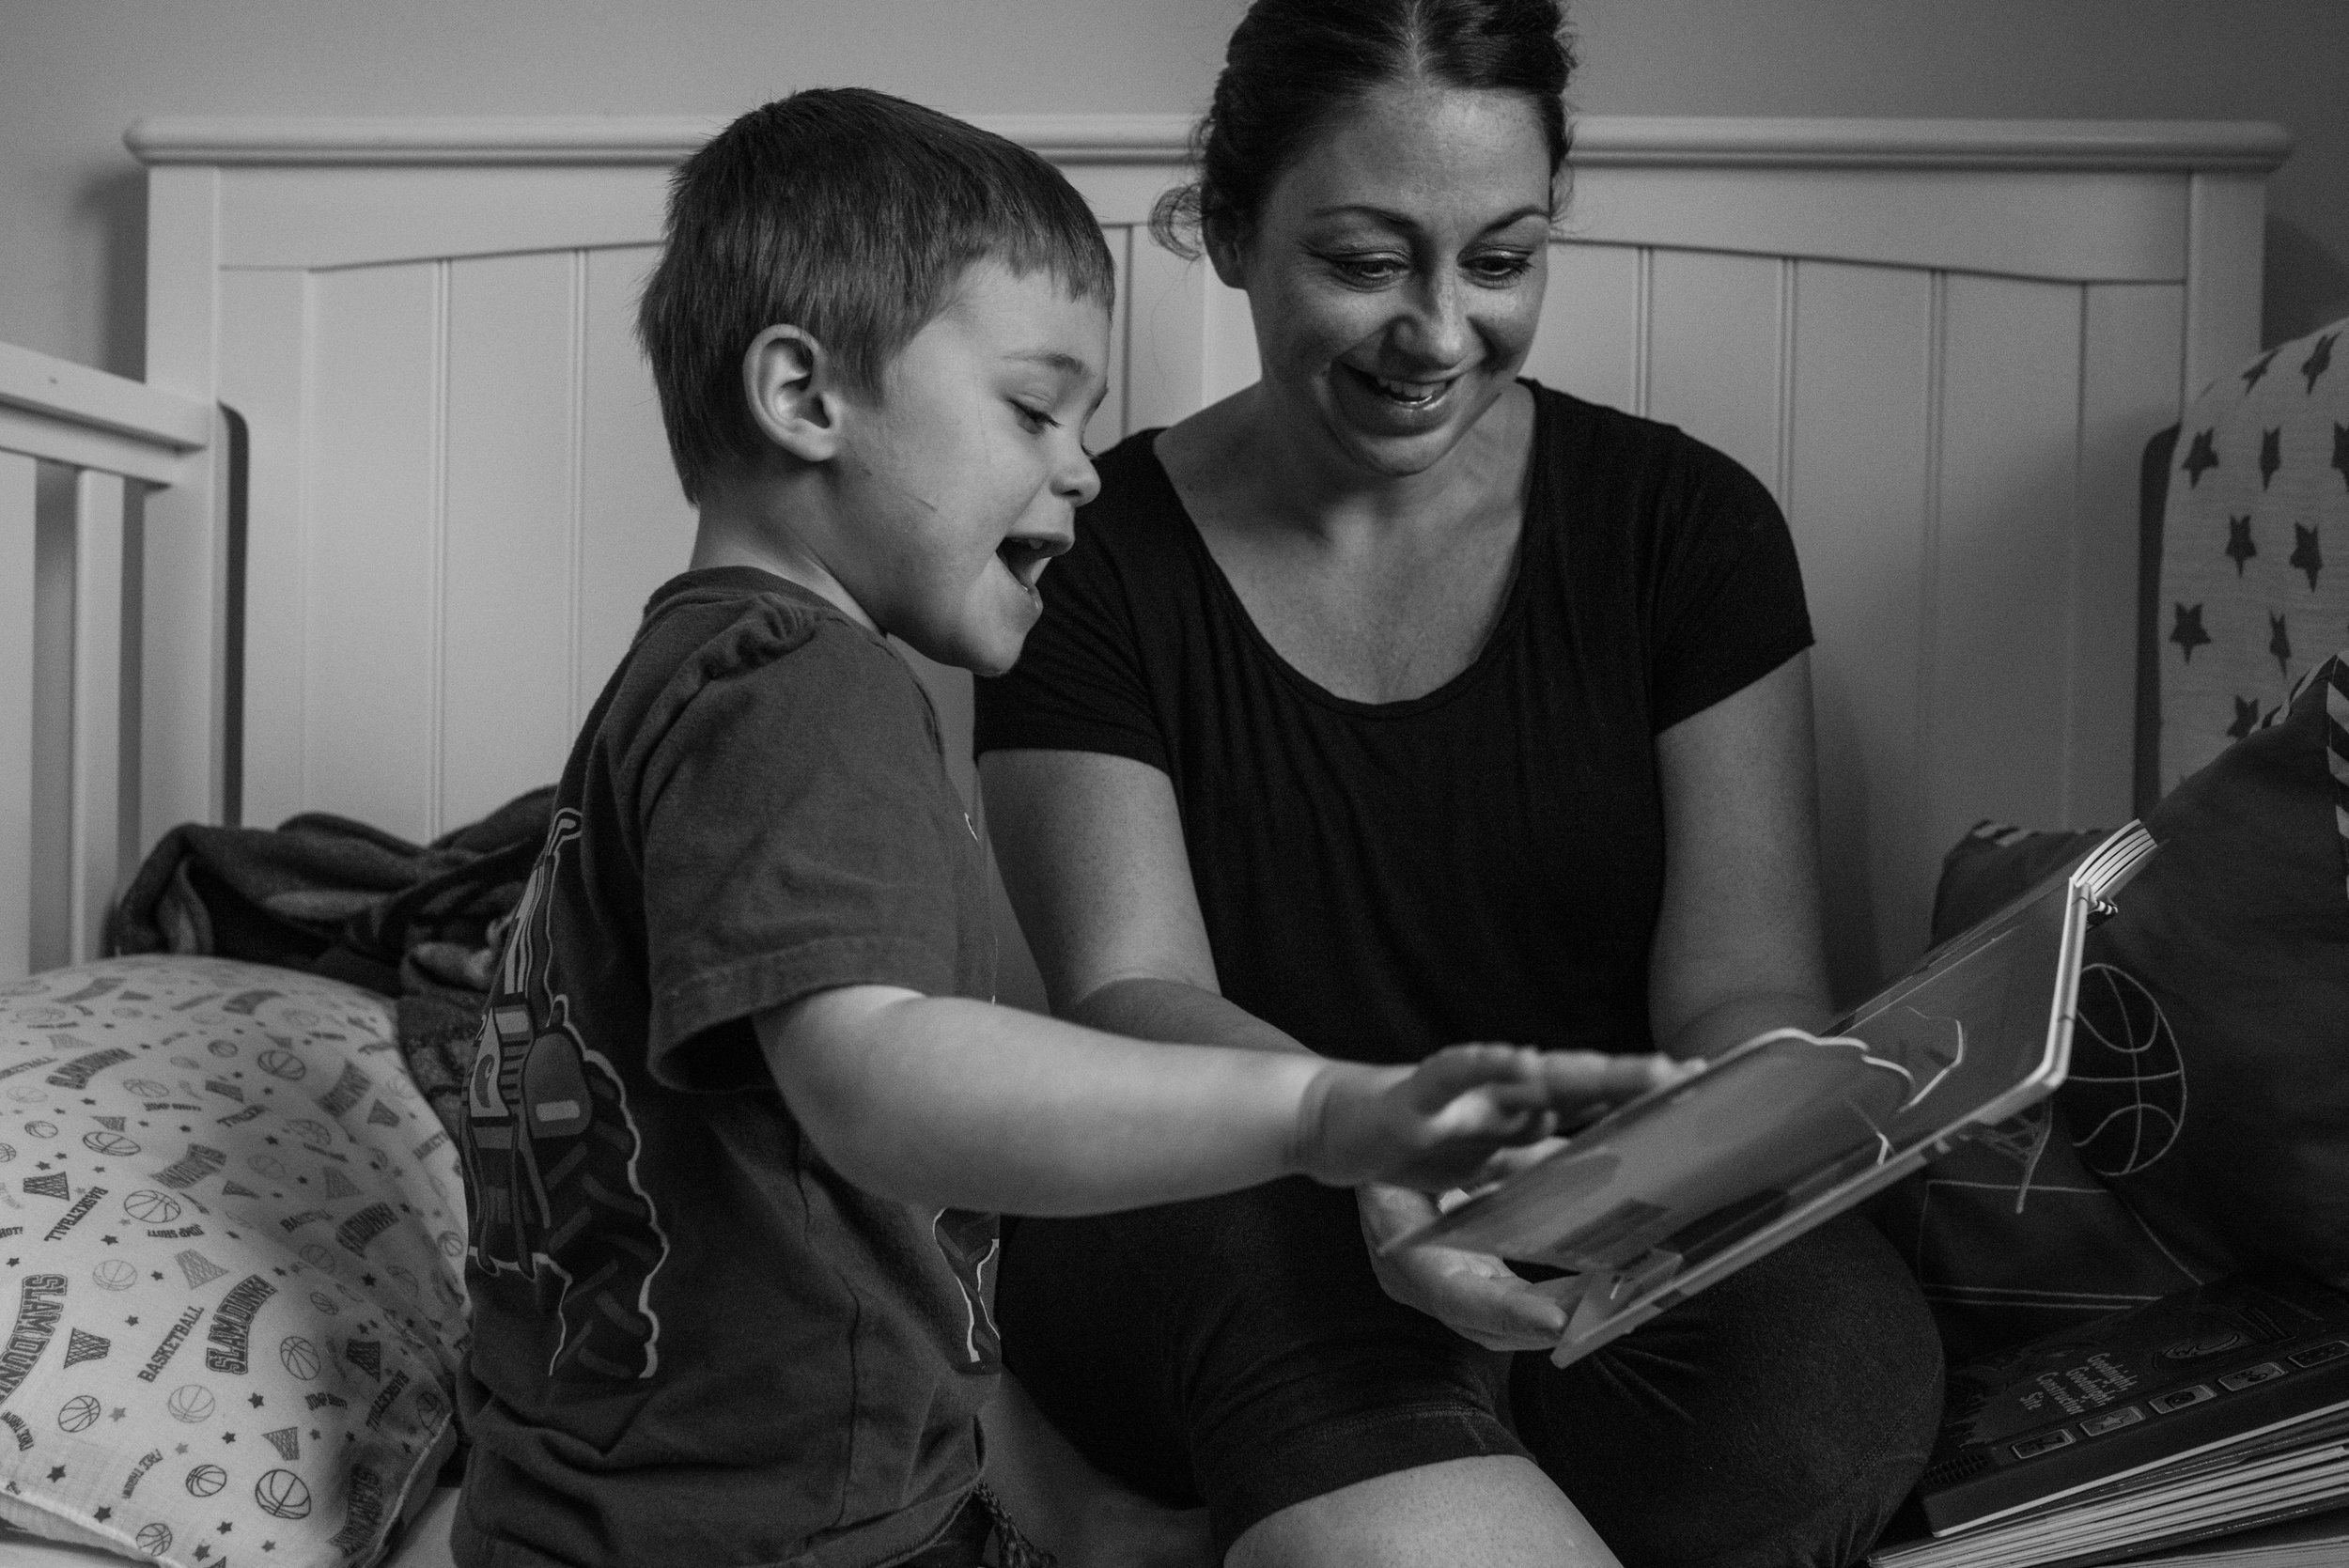 Mom and son reading a book in his room sitting on the bed